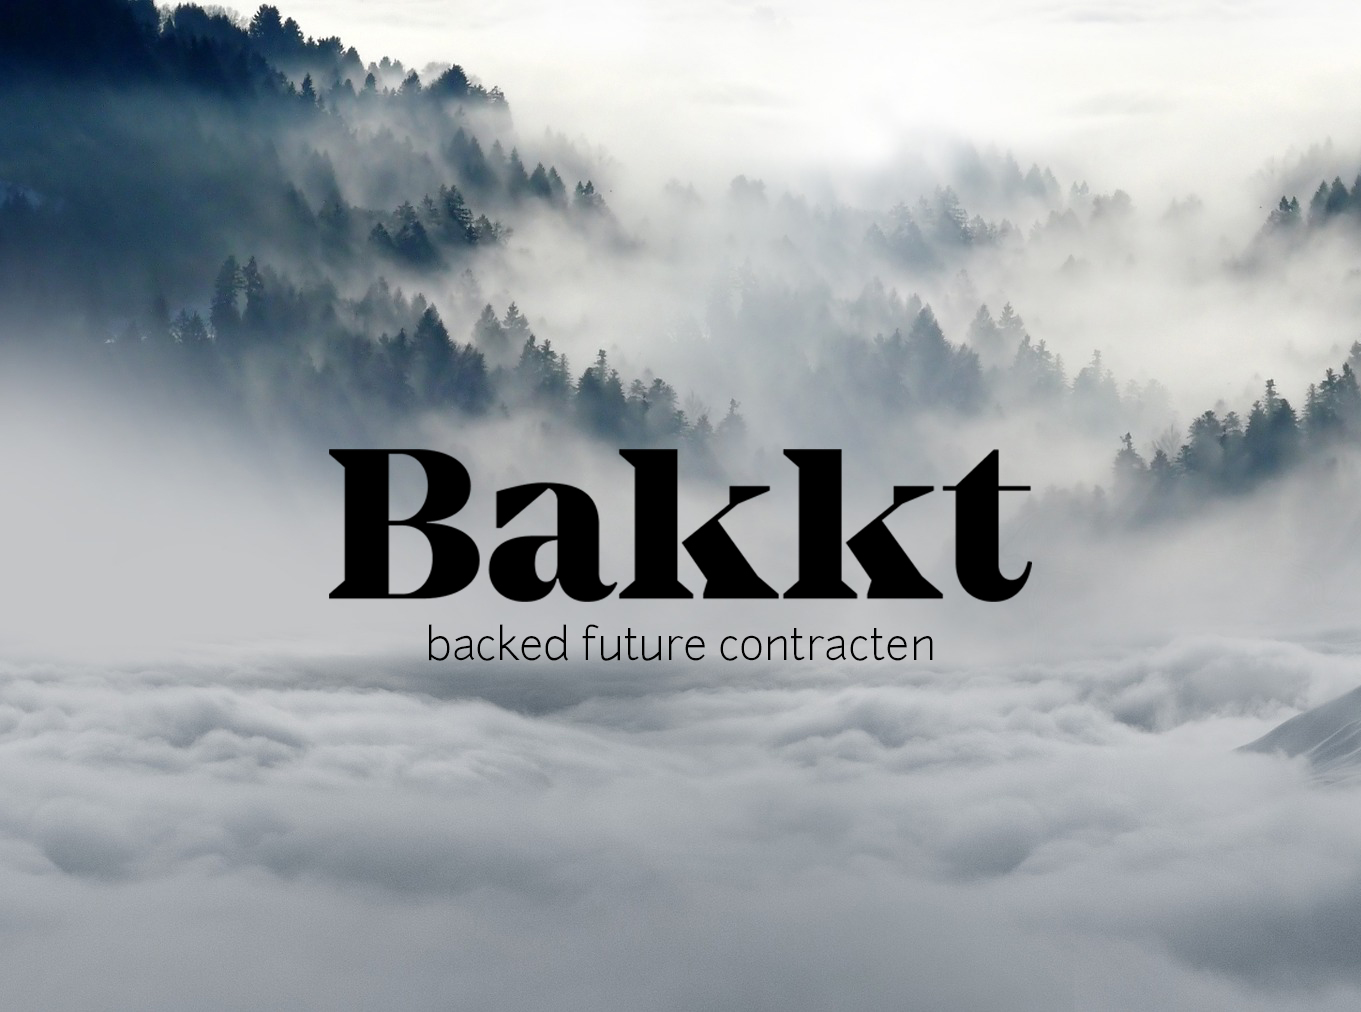 Bakkt Bitcoin future contracten